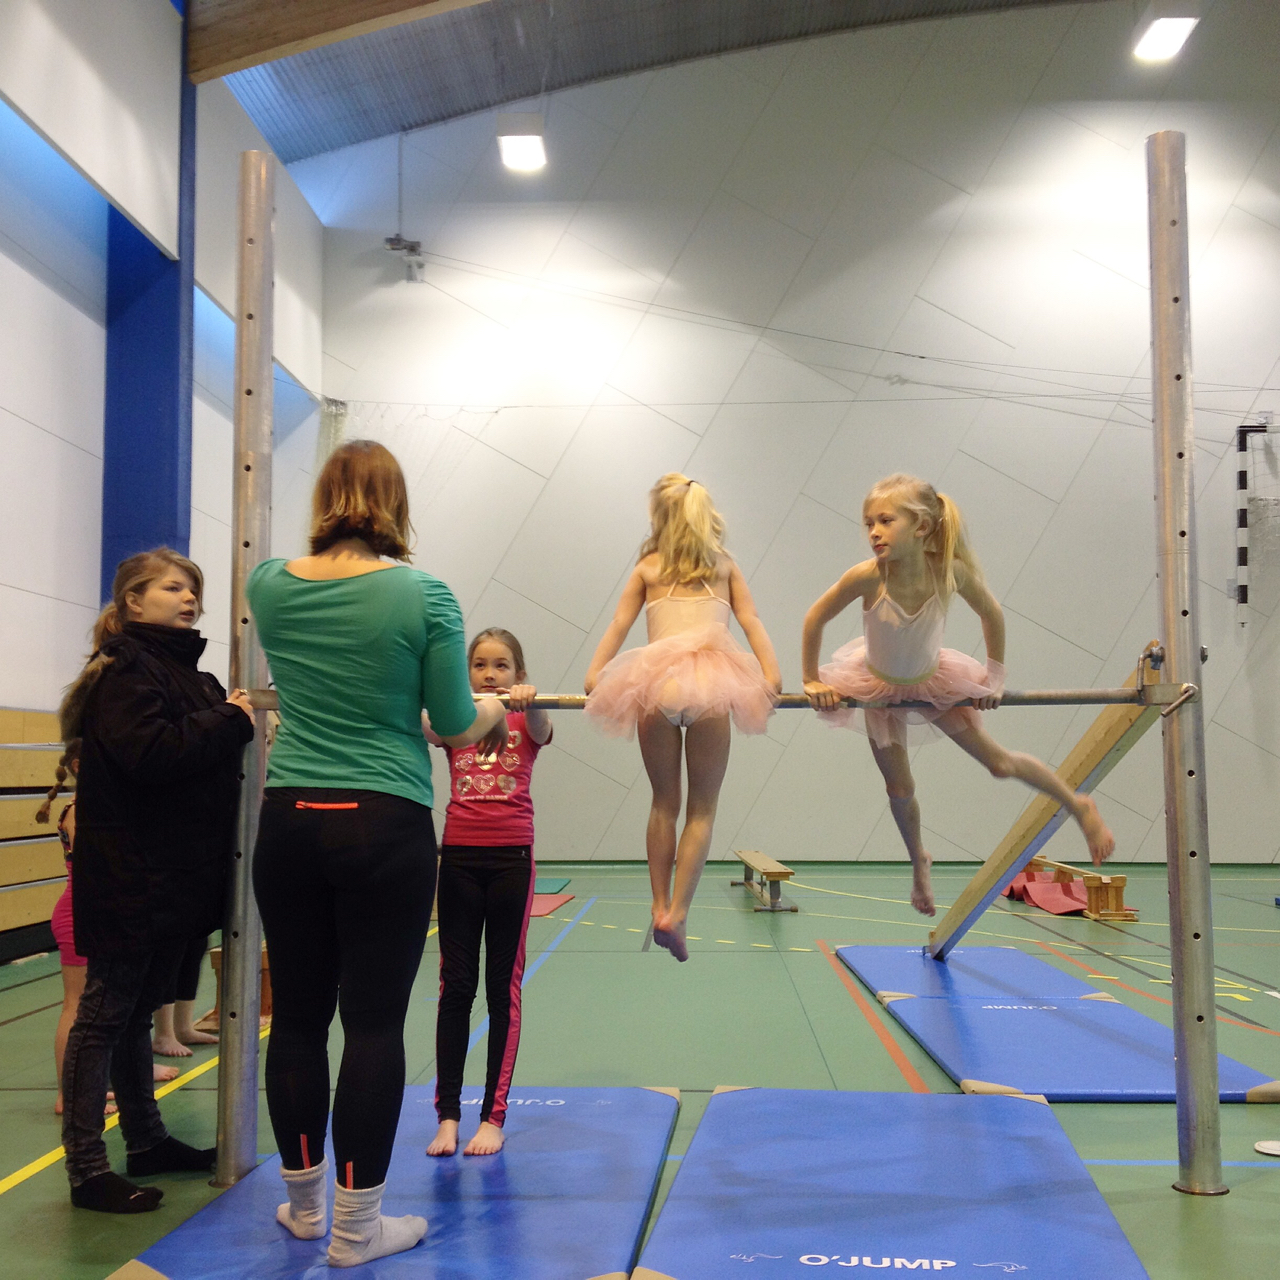 Saturday morning gymnastics class is a packed affair. Iceland's success in recent years at the European Championships has raised the profile of the sport amongst tutu-wearing young girls, and there's a whiff of haughtiness in the noses of the ladies with the straightest cartwheels.